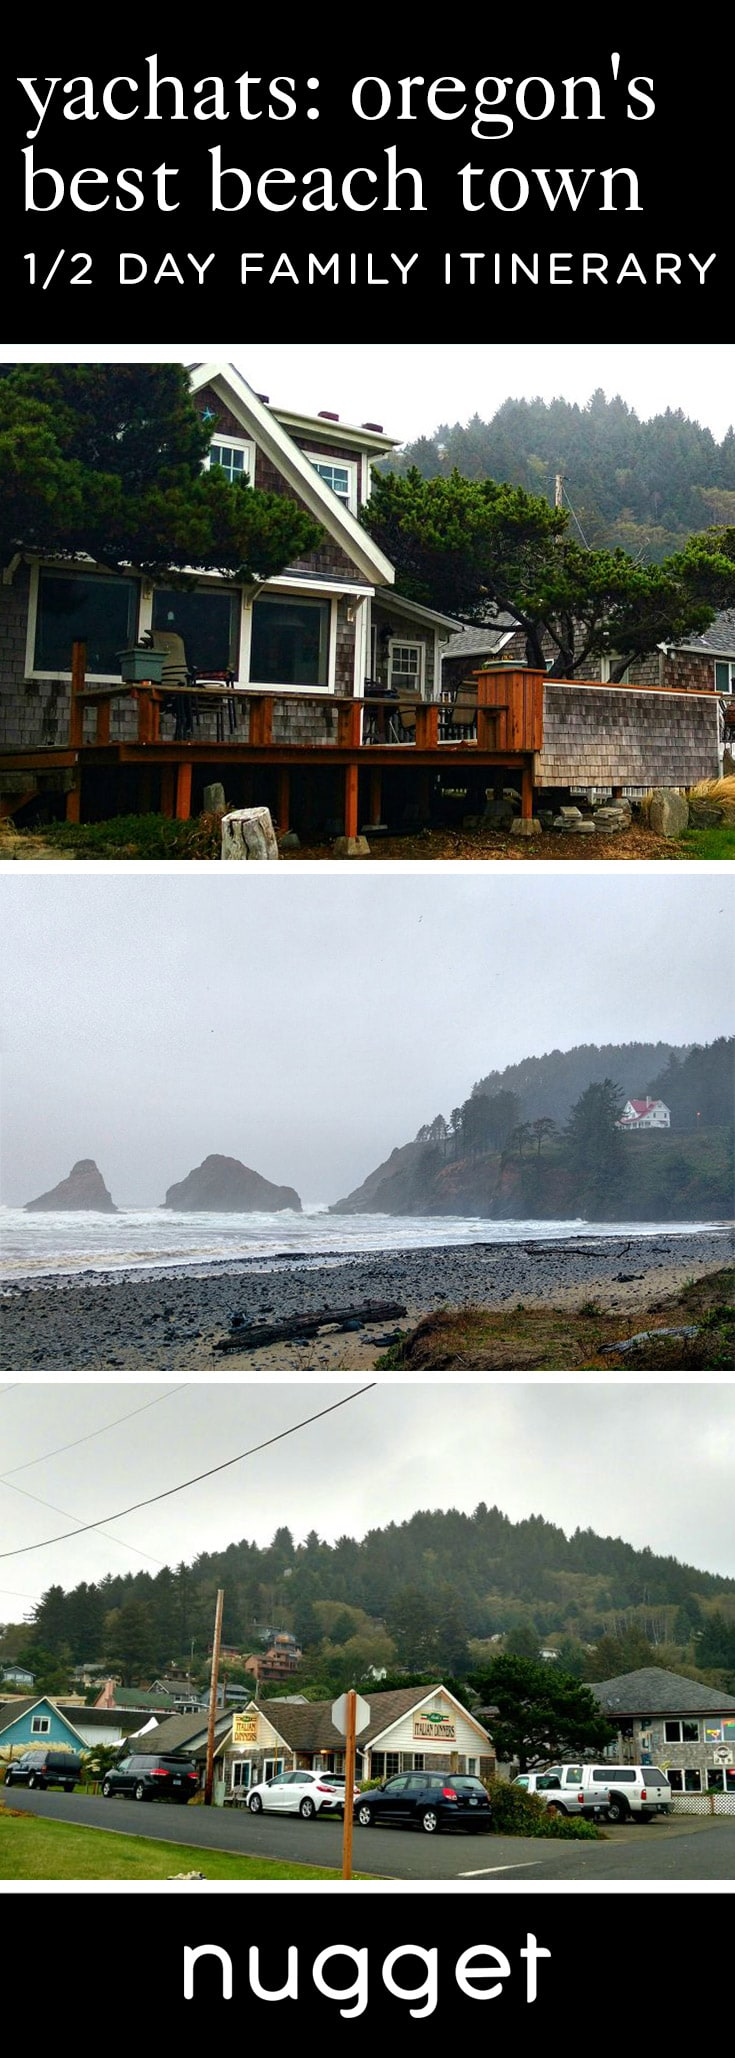 Yachats: Oregon's Best Beach Town